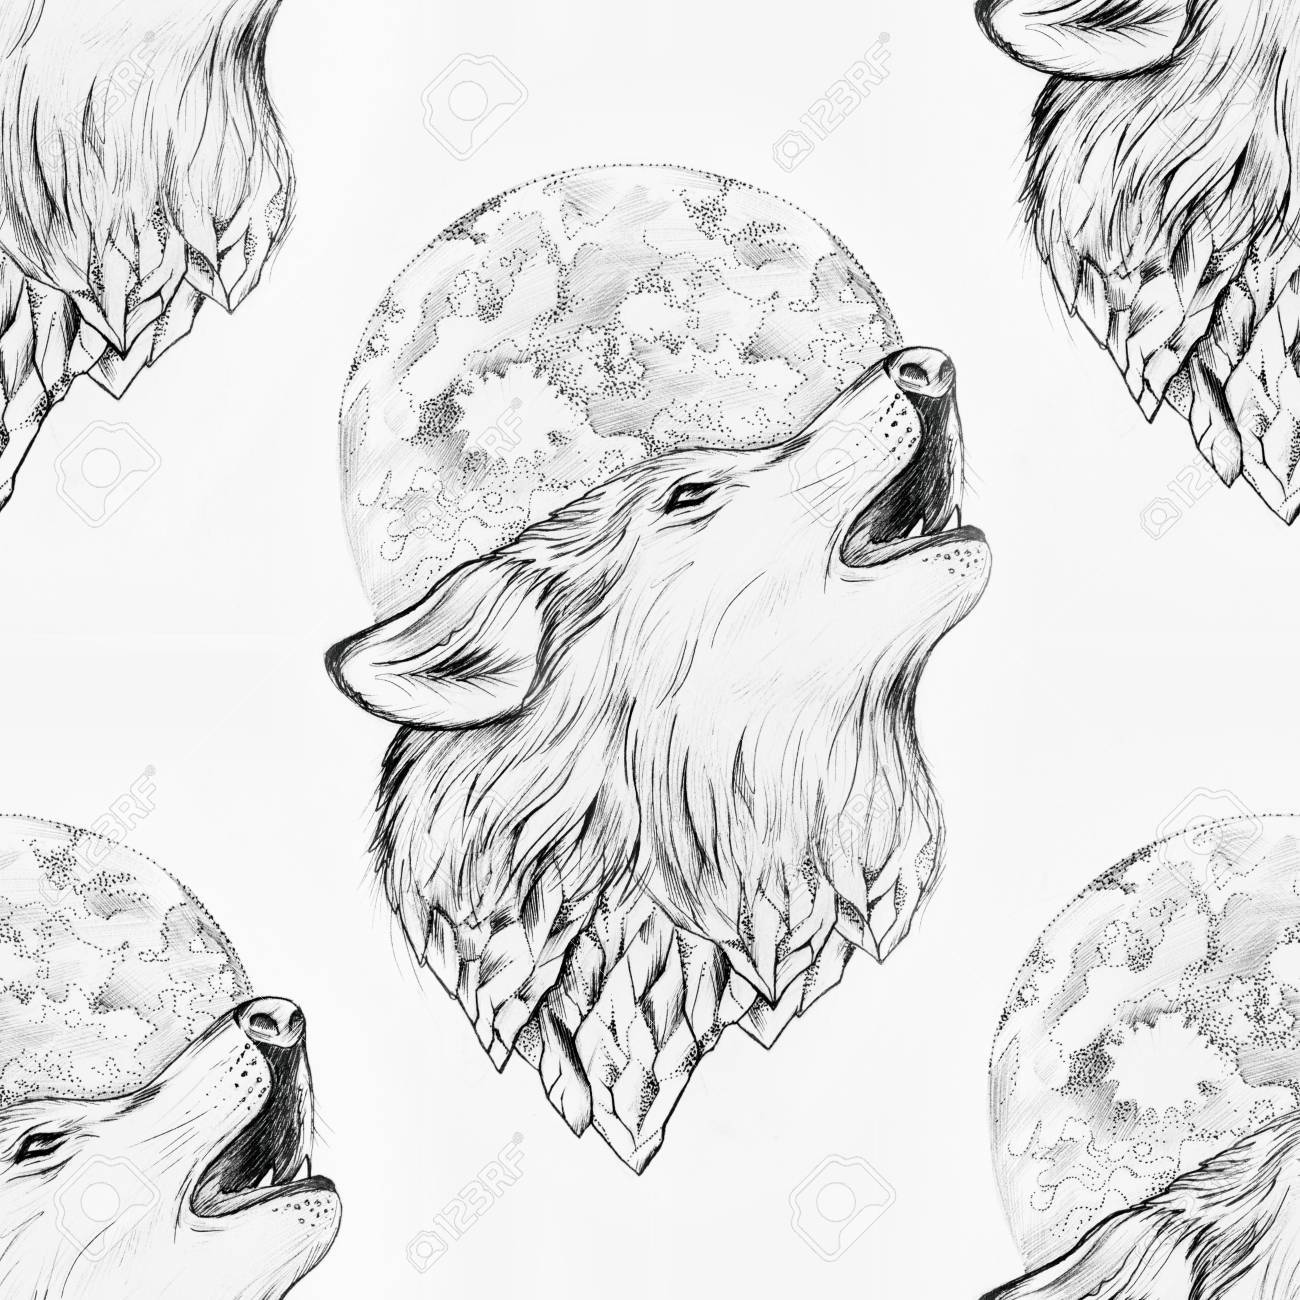 Seamless Drawing Of A Wolf Howling At The Moon On A White Background